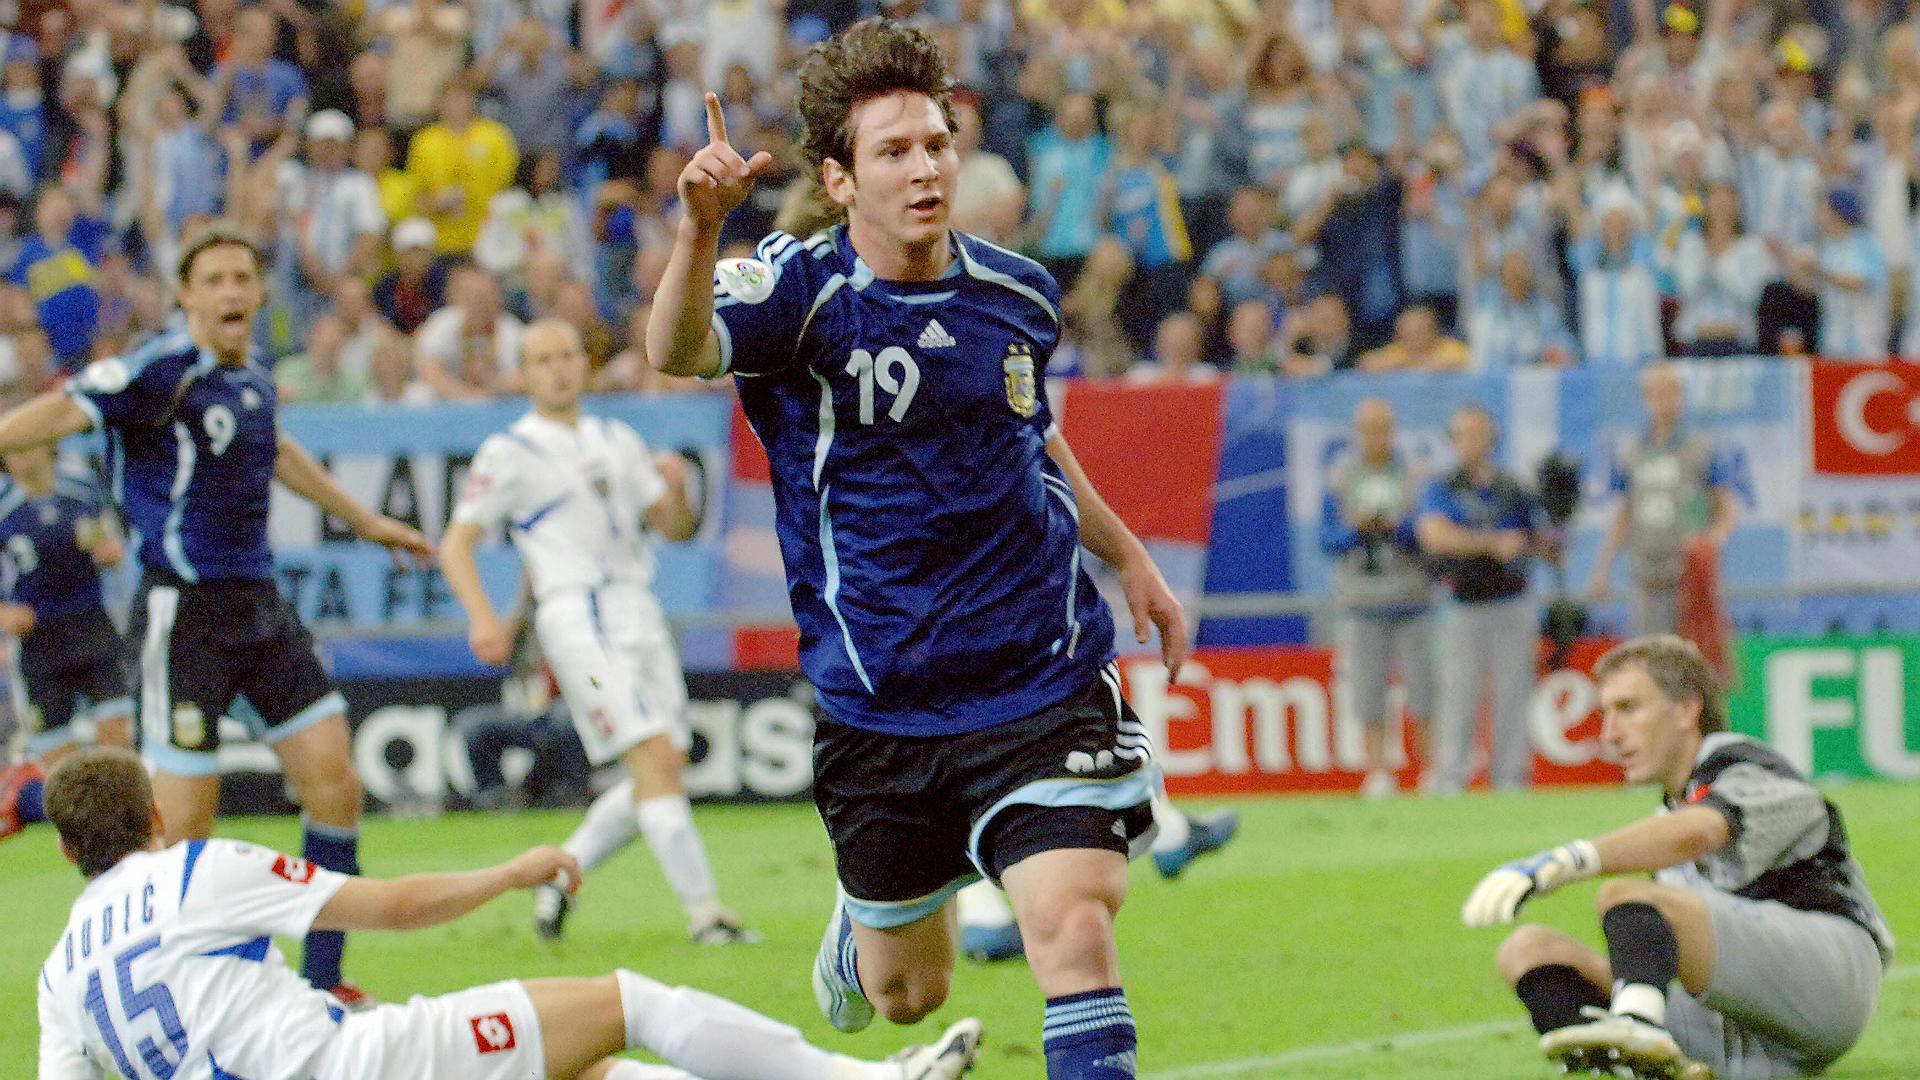 lionel messi 2006 World Cup ftr